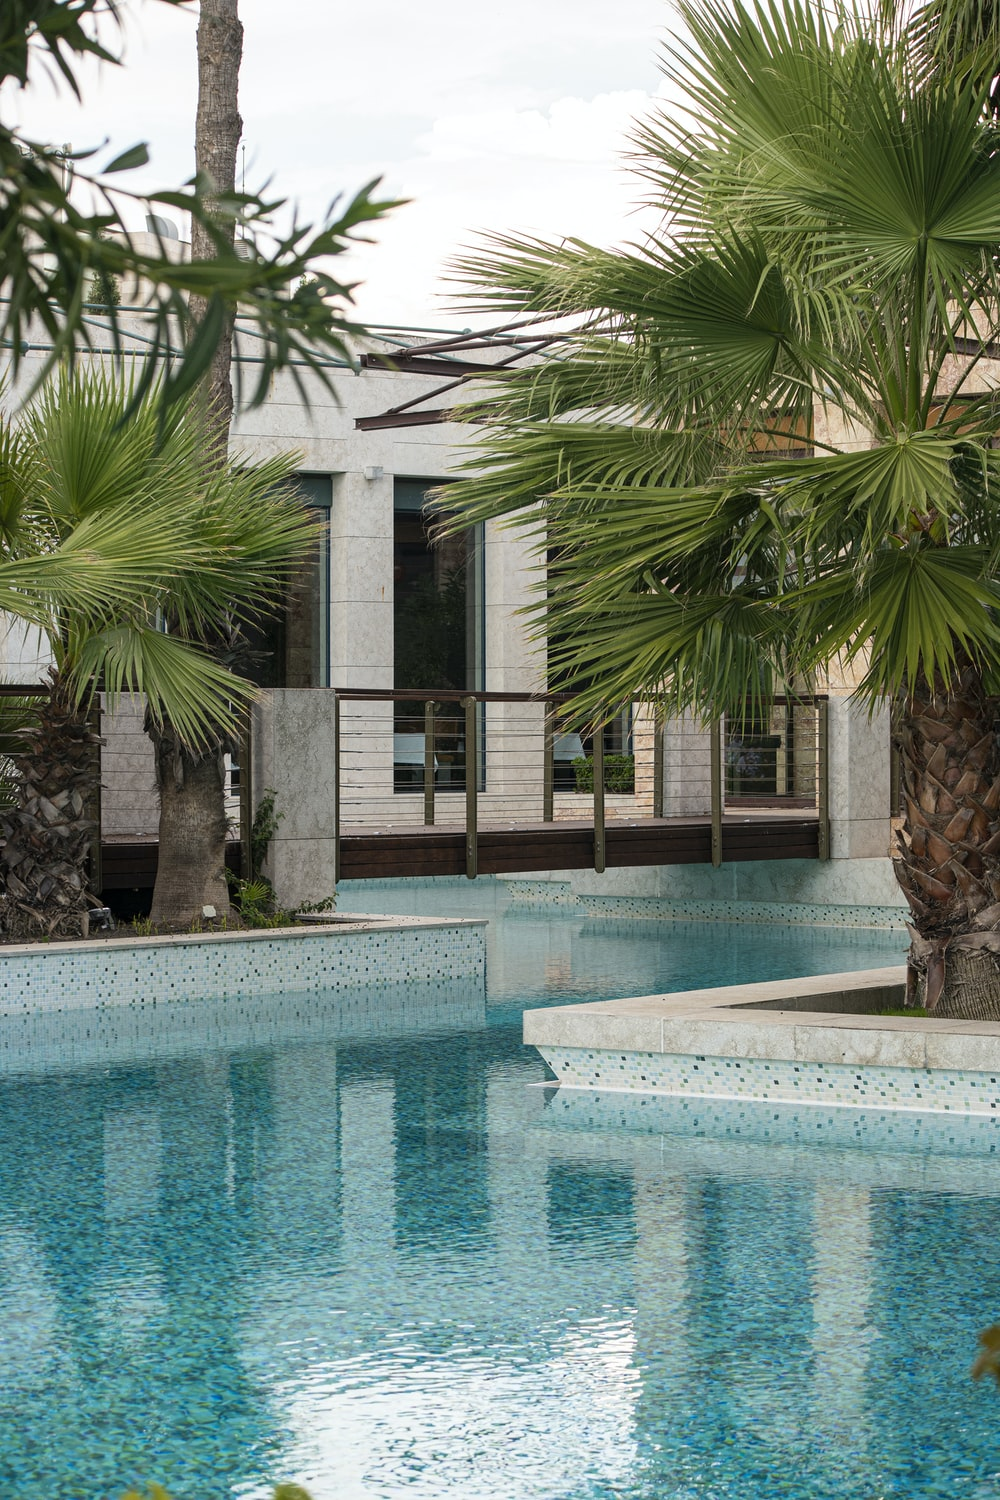 swimming pool near palm trees and building